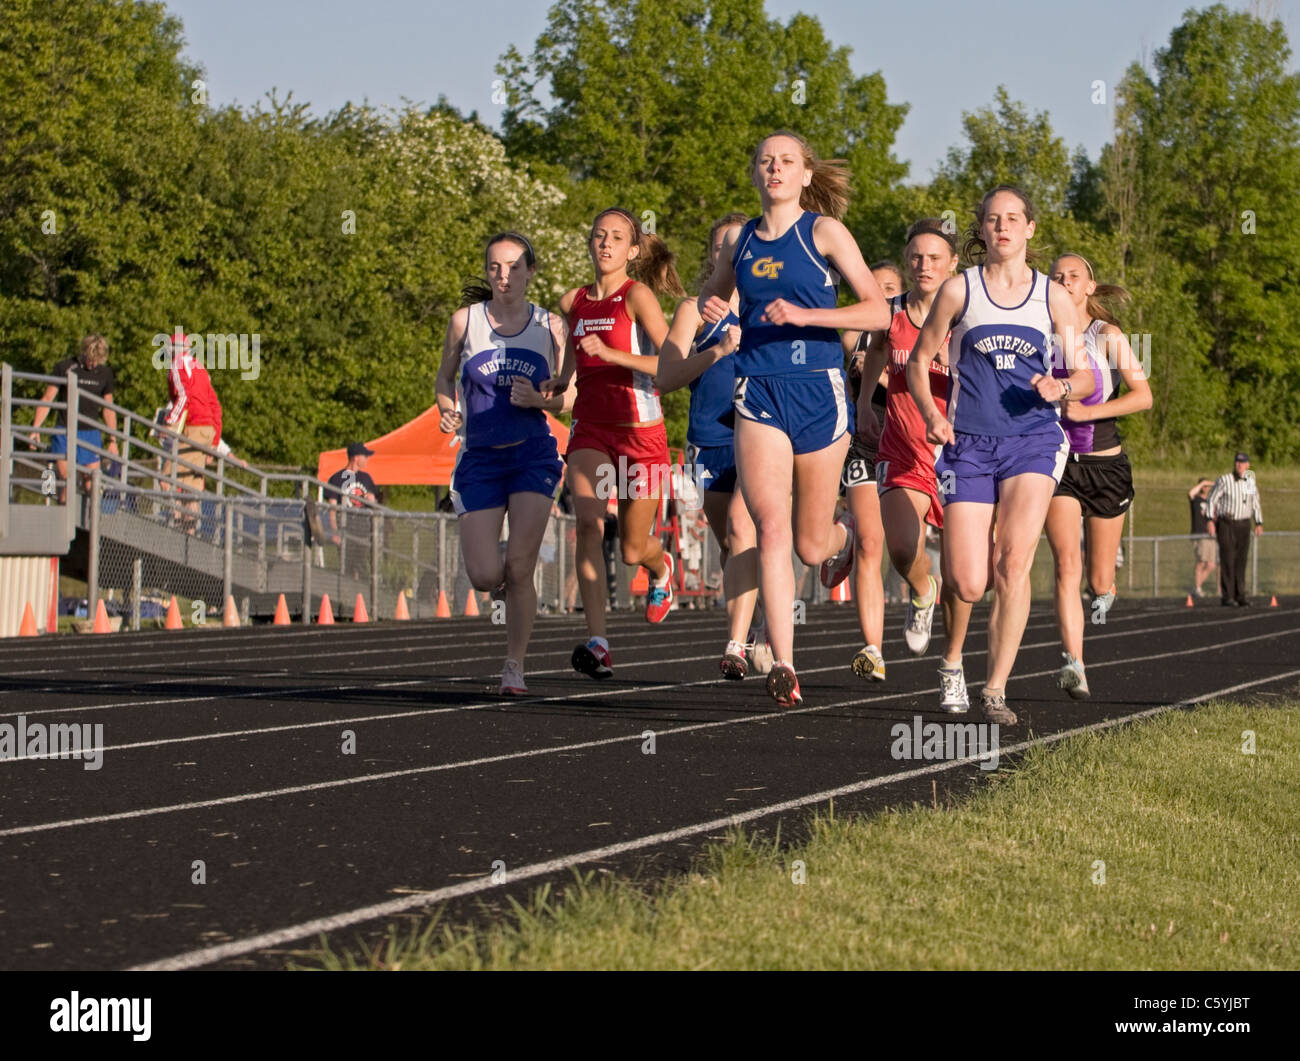 High school girls run in a pack at the sectional track meet in Wisconsin. - Stock Image